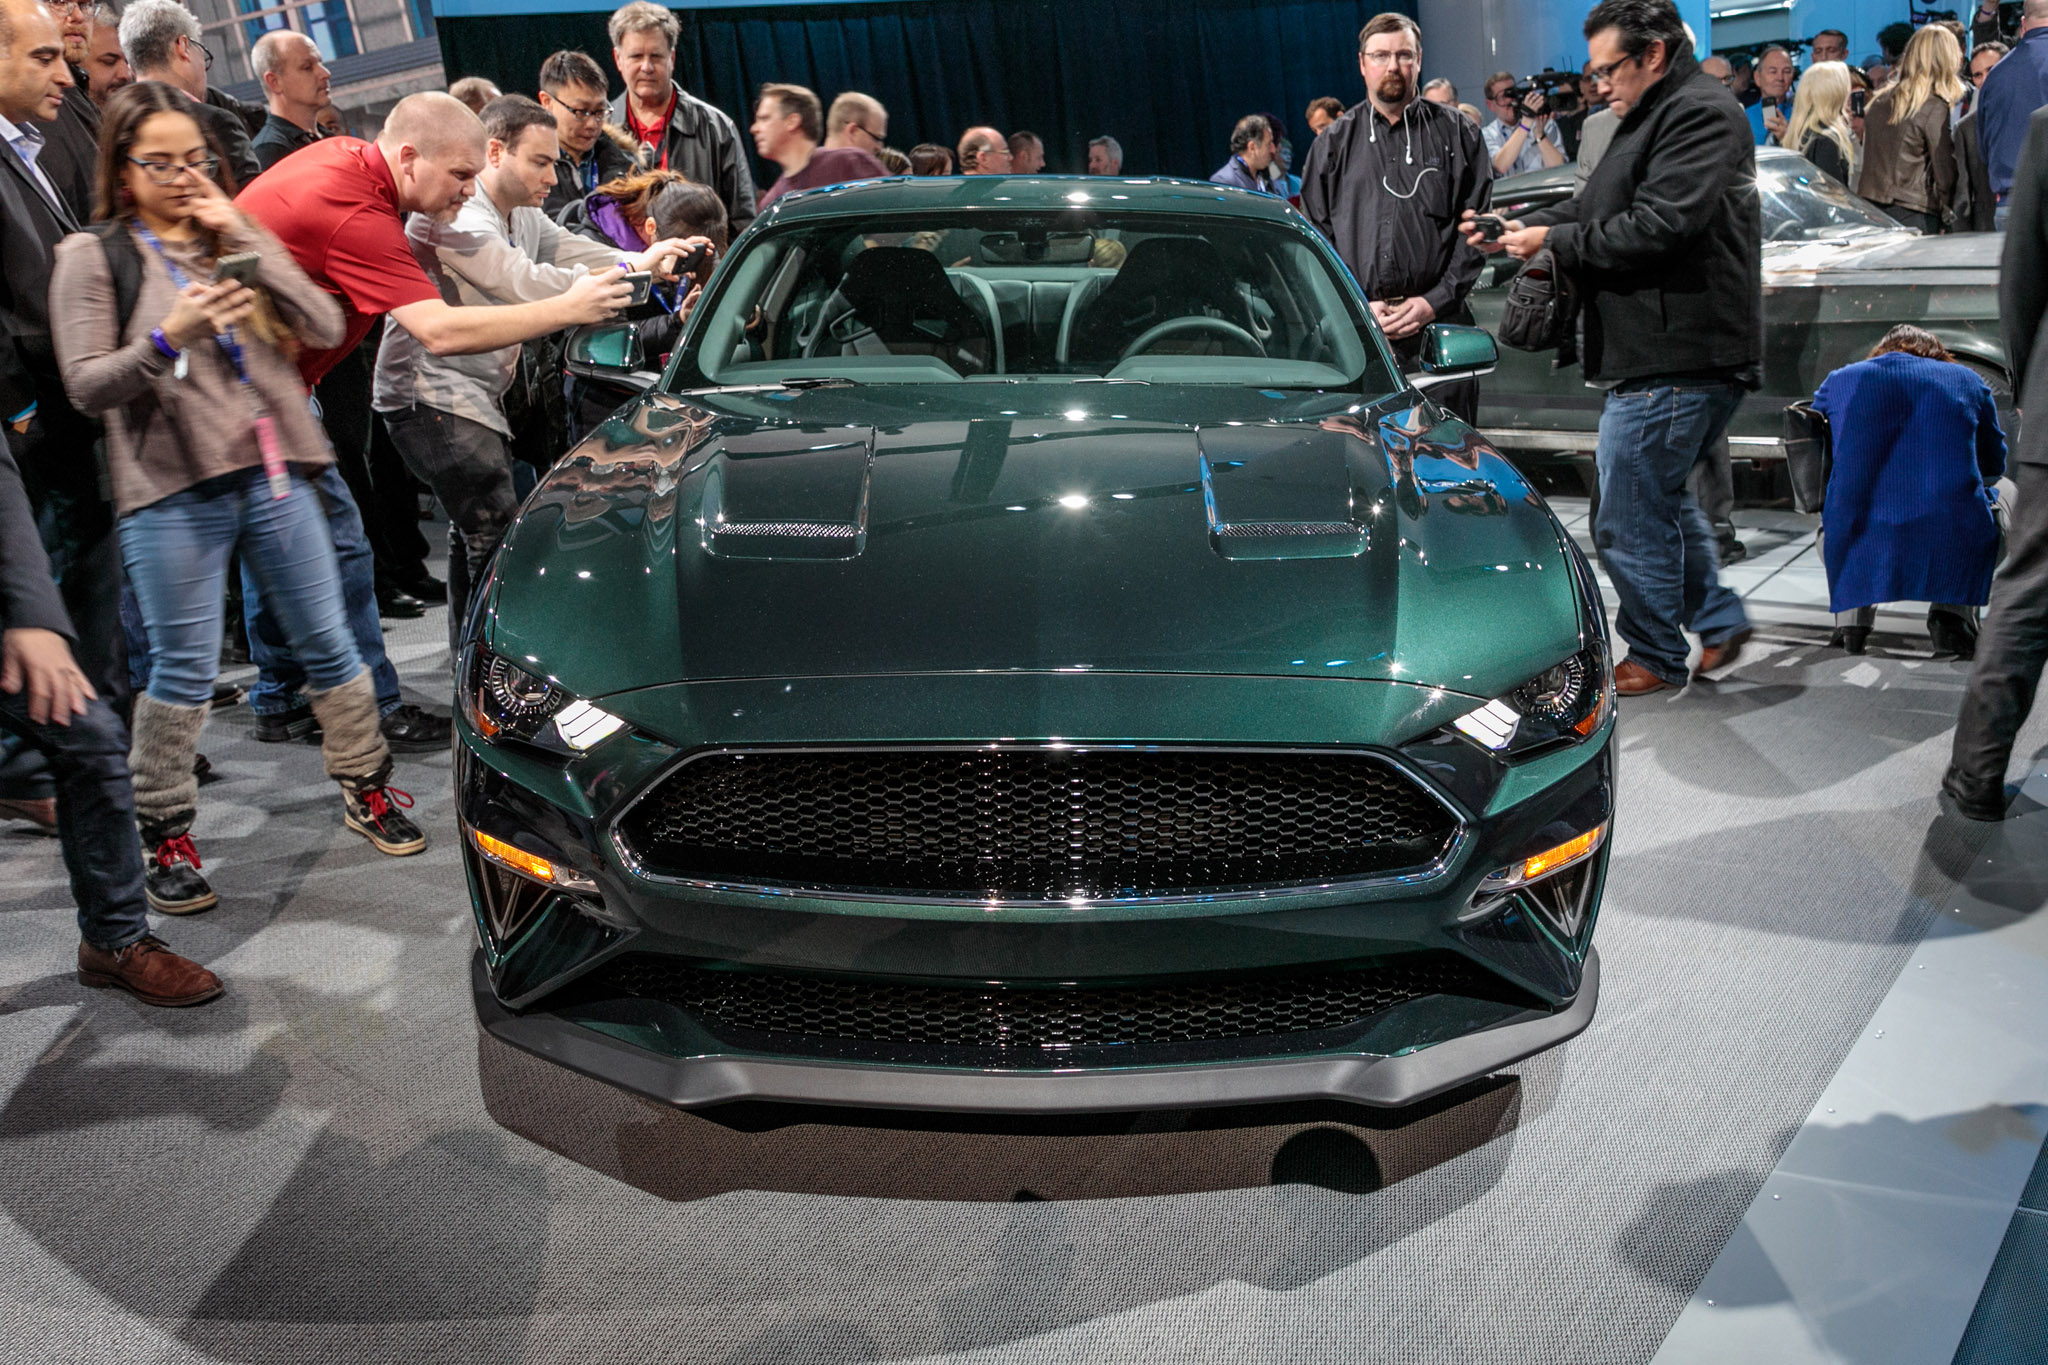 Mustang Comes to Detroit With a Bullitt